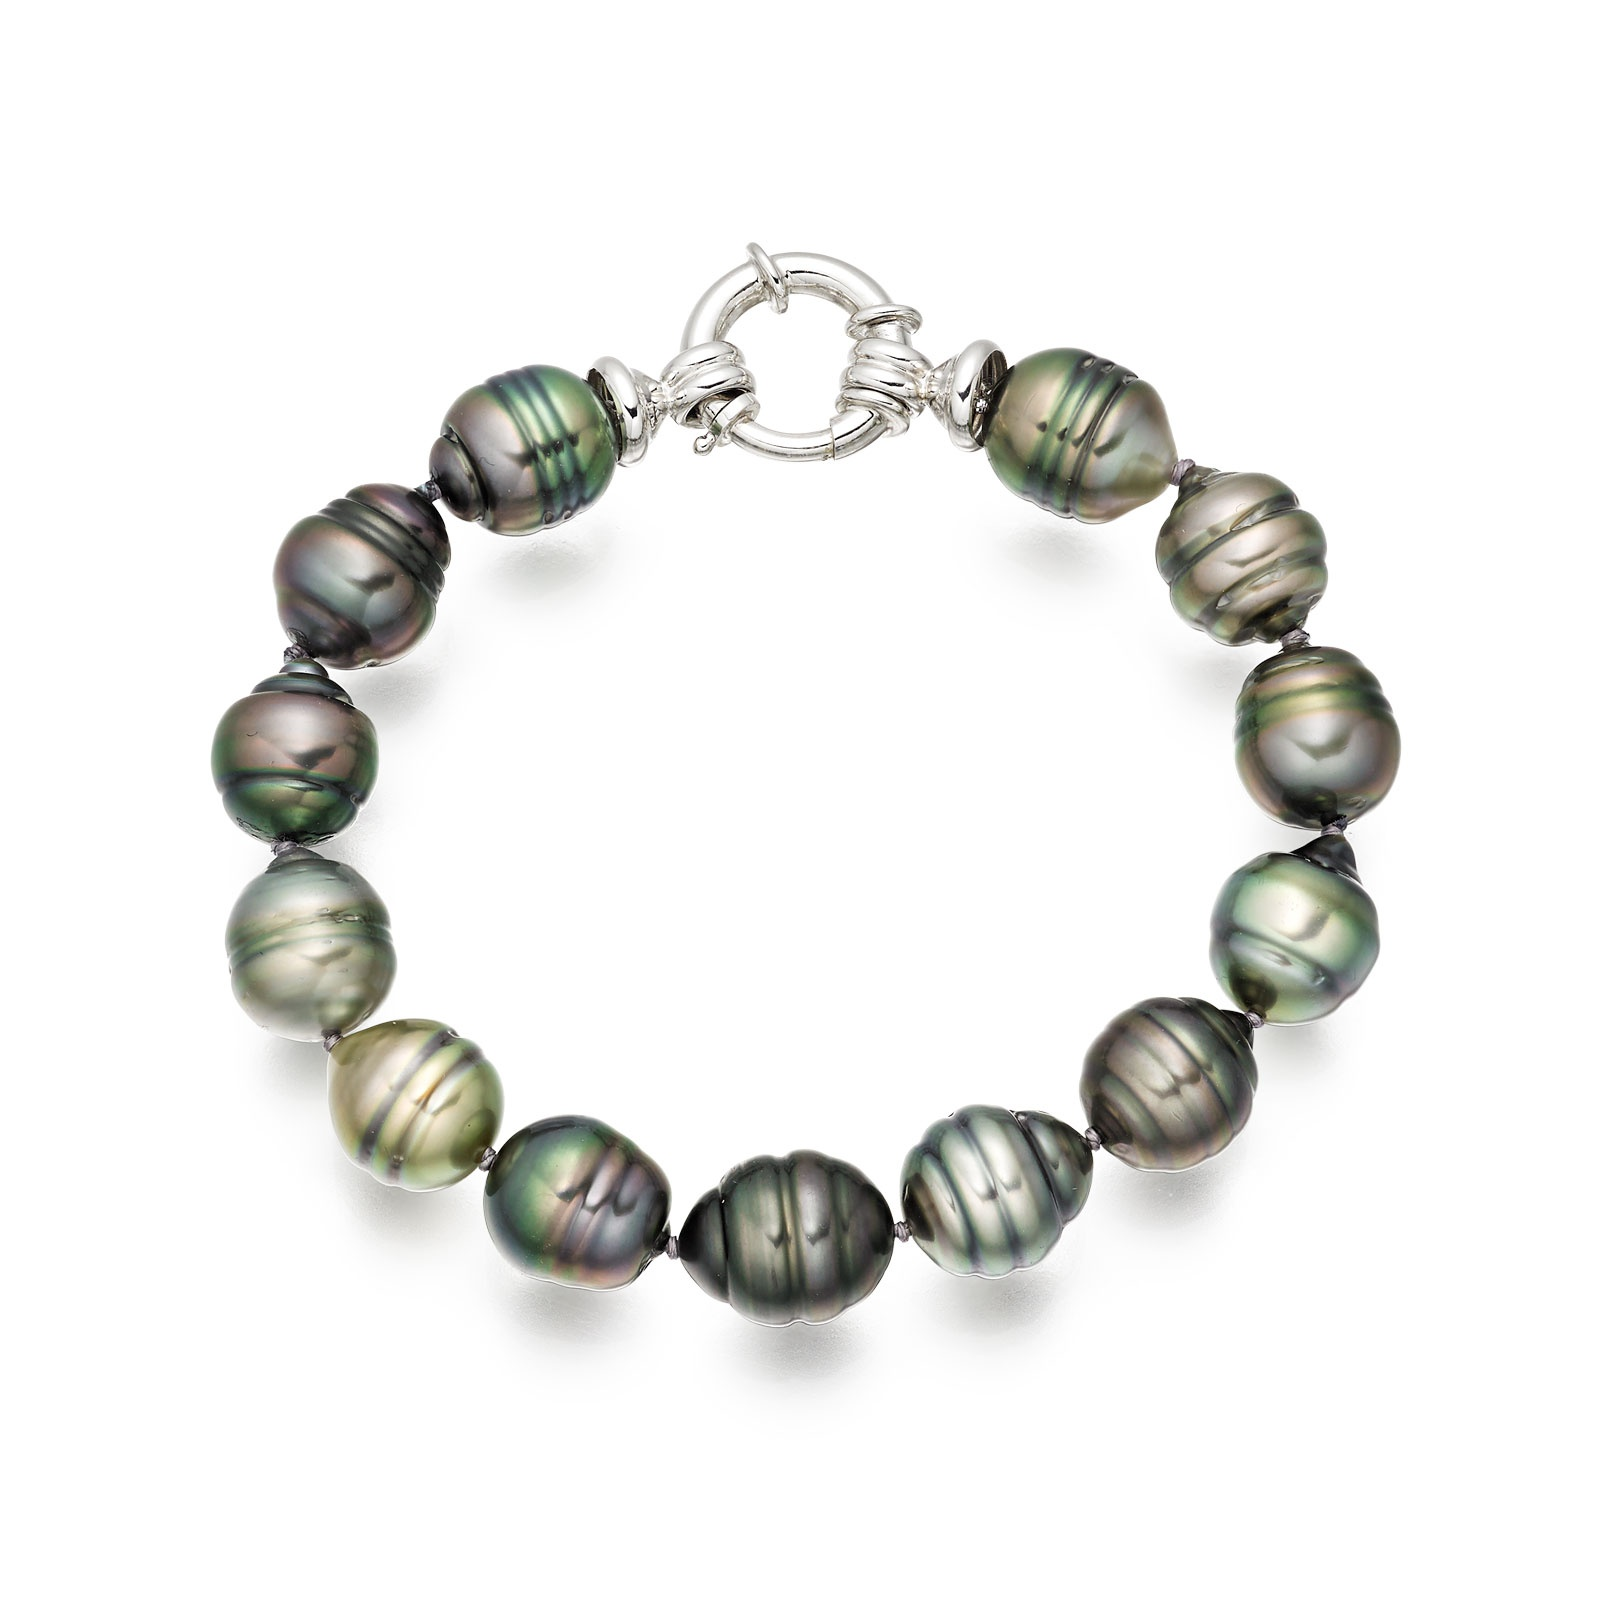 Cultured Freshwater Multi-coloured Baroque Pearl Bracelet, presented in a beautiful jewellery gift box